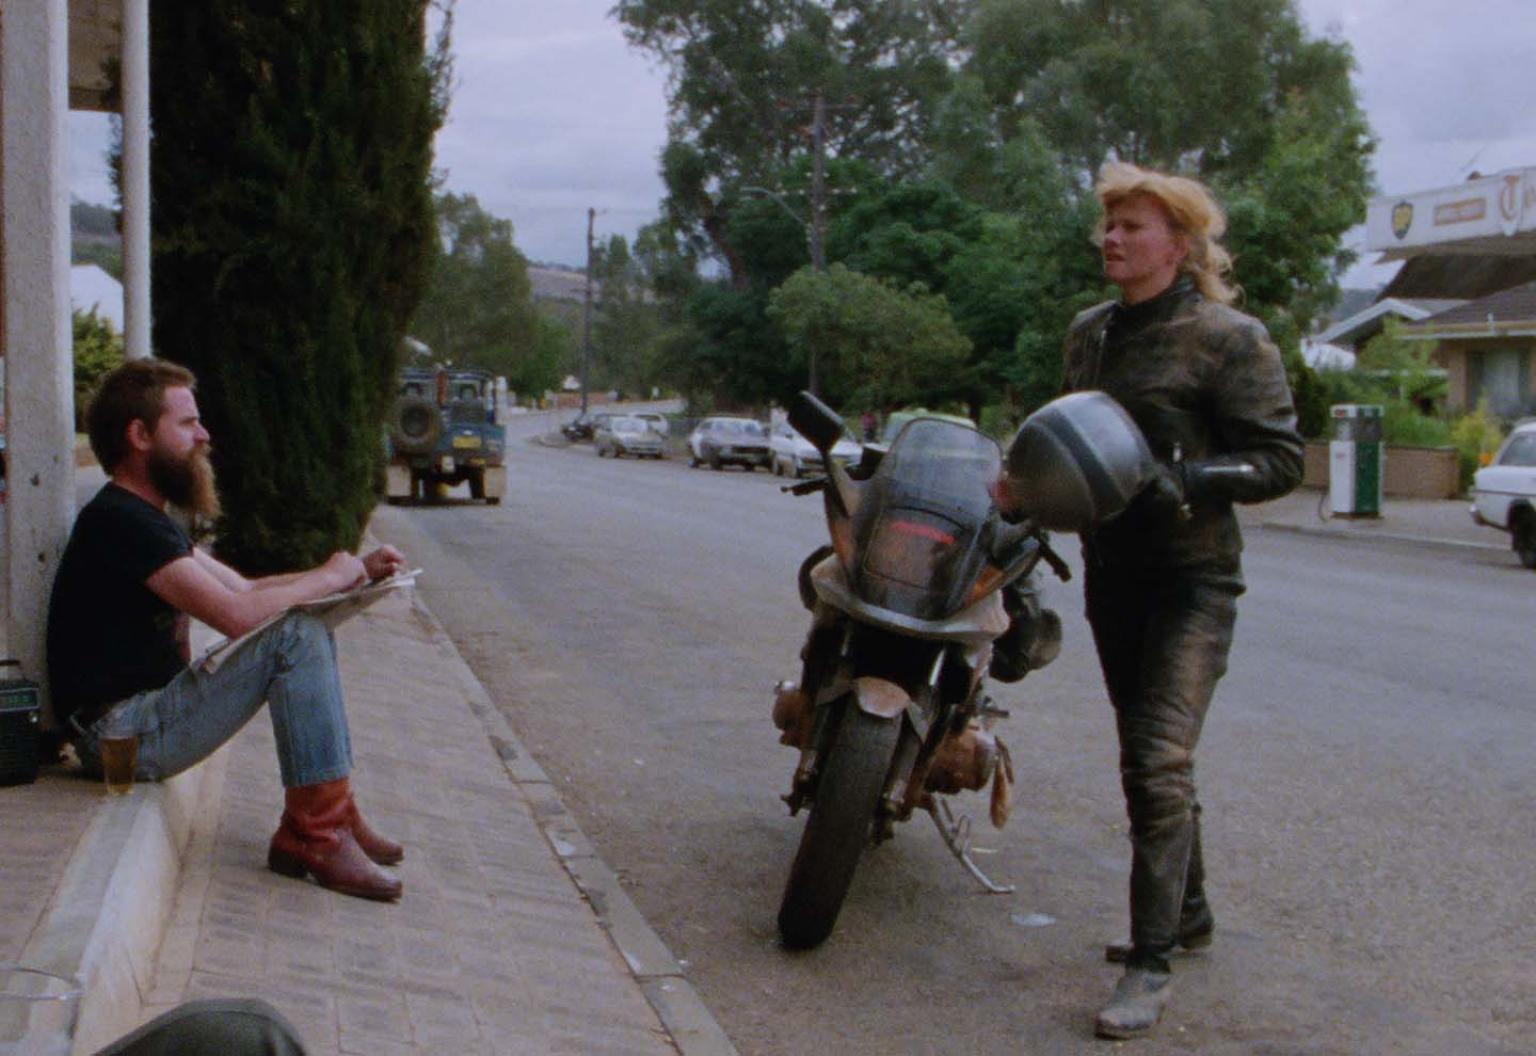 Deborra-lee Furness has dismounted her motorcycle outside a country pub in a still from the film Shame